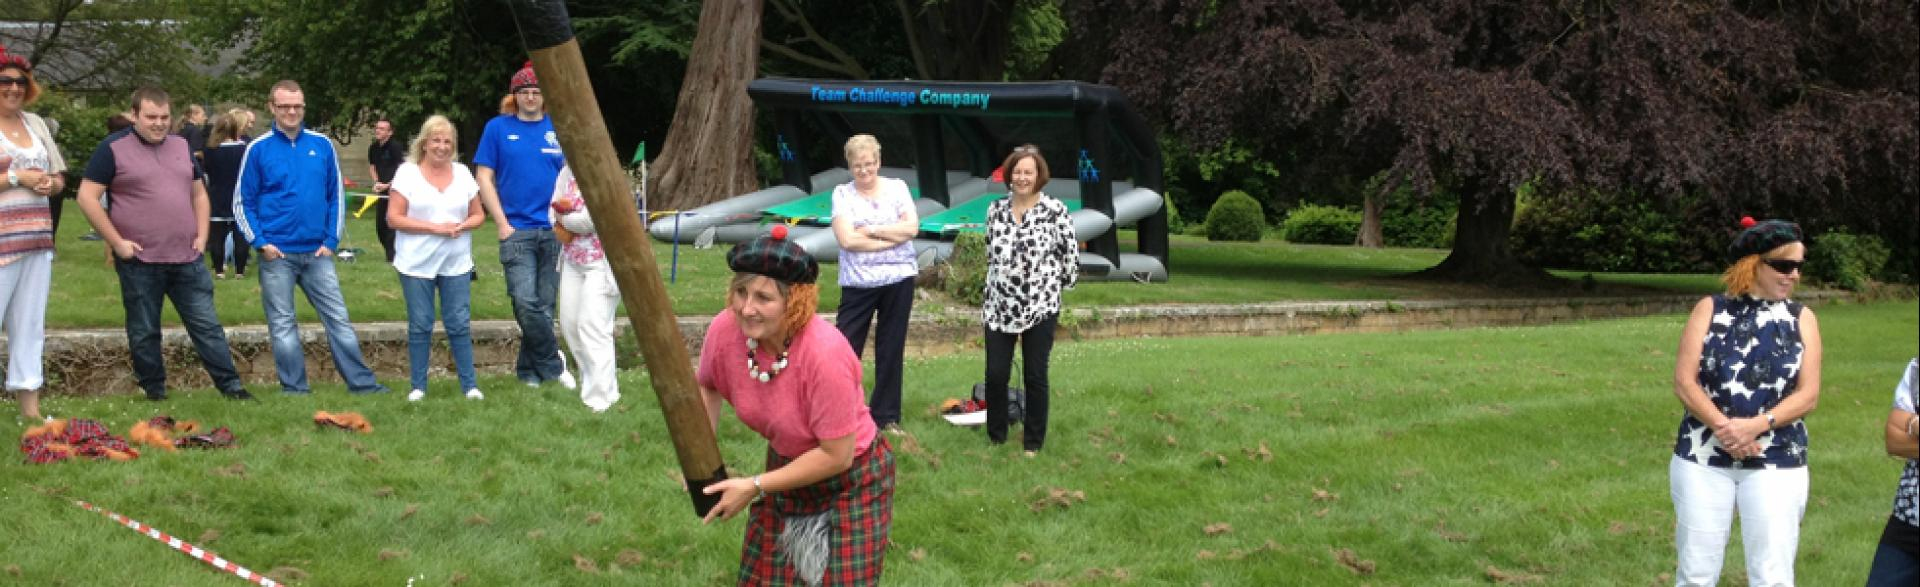 The AA Country Pursuits Corporate Activities